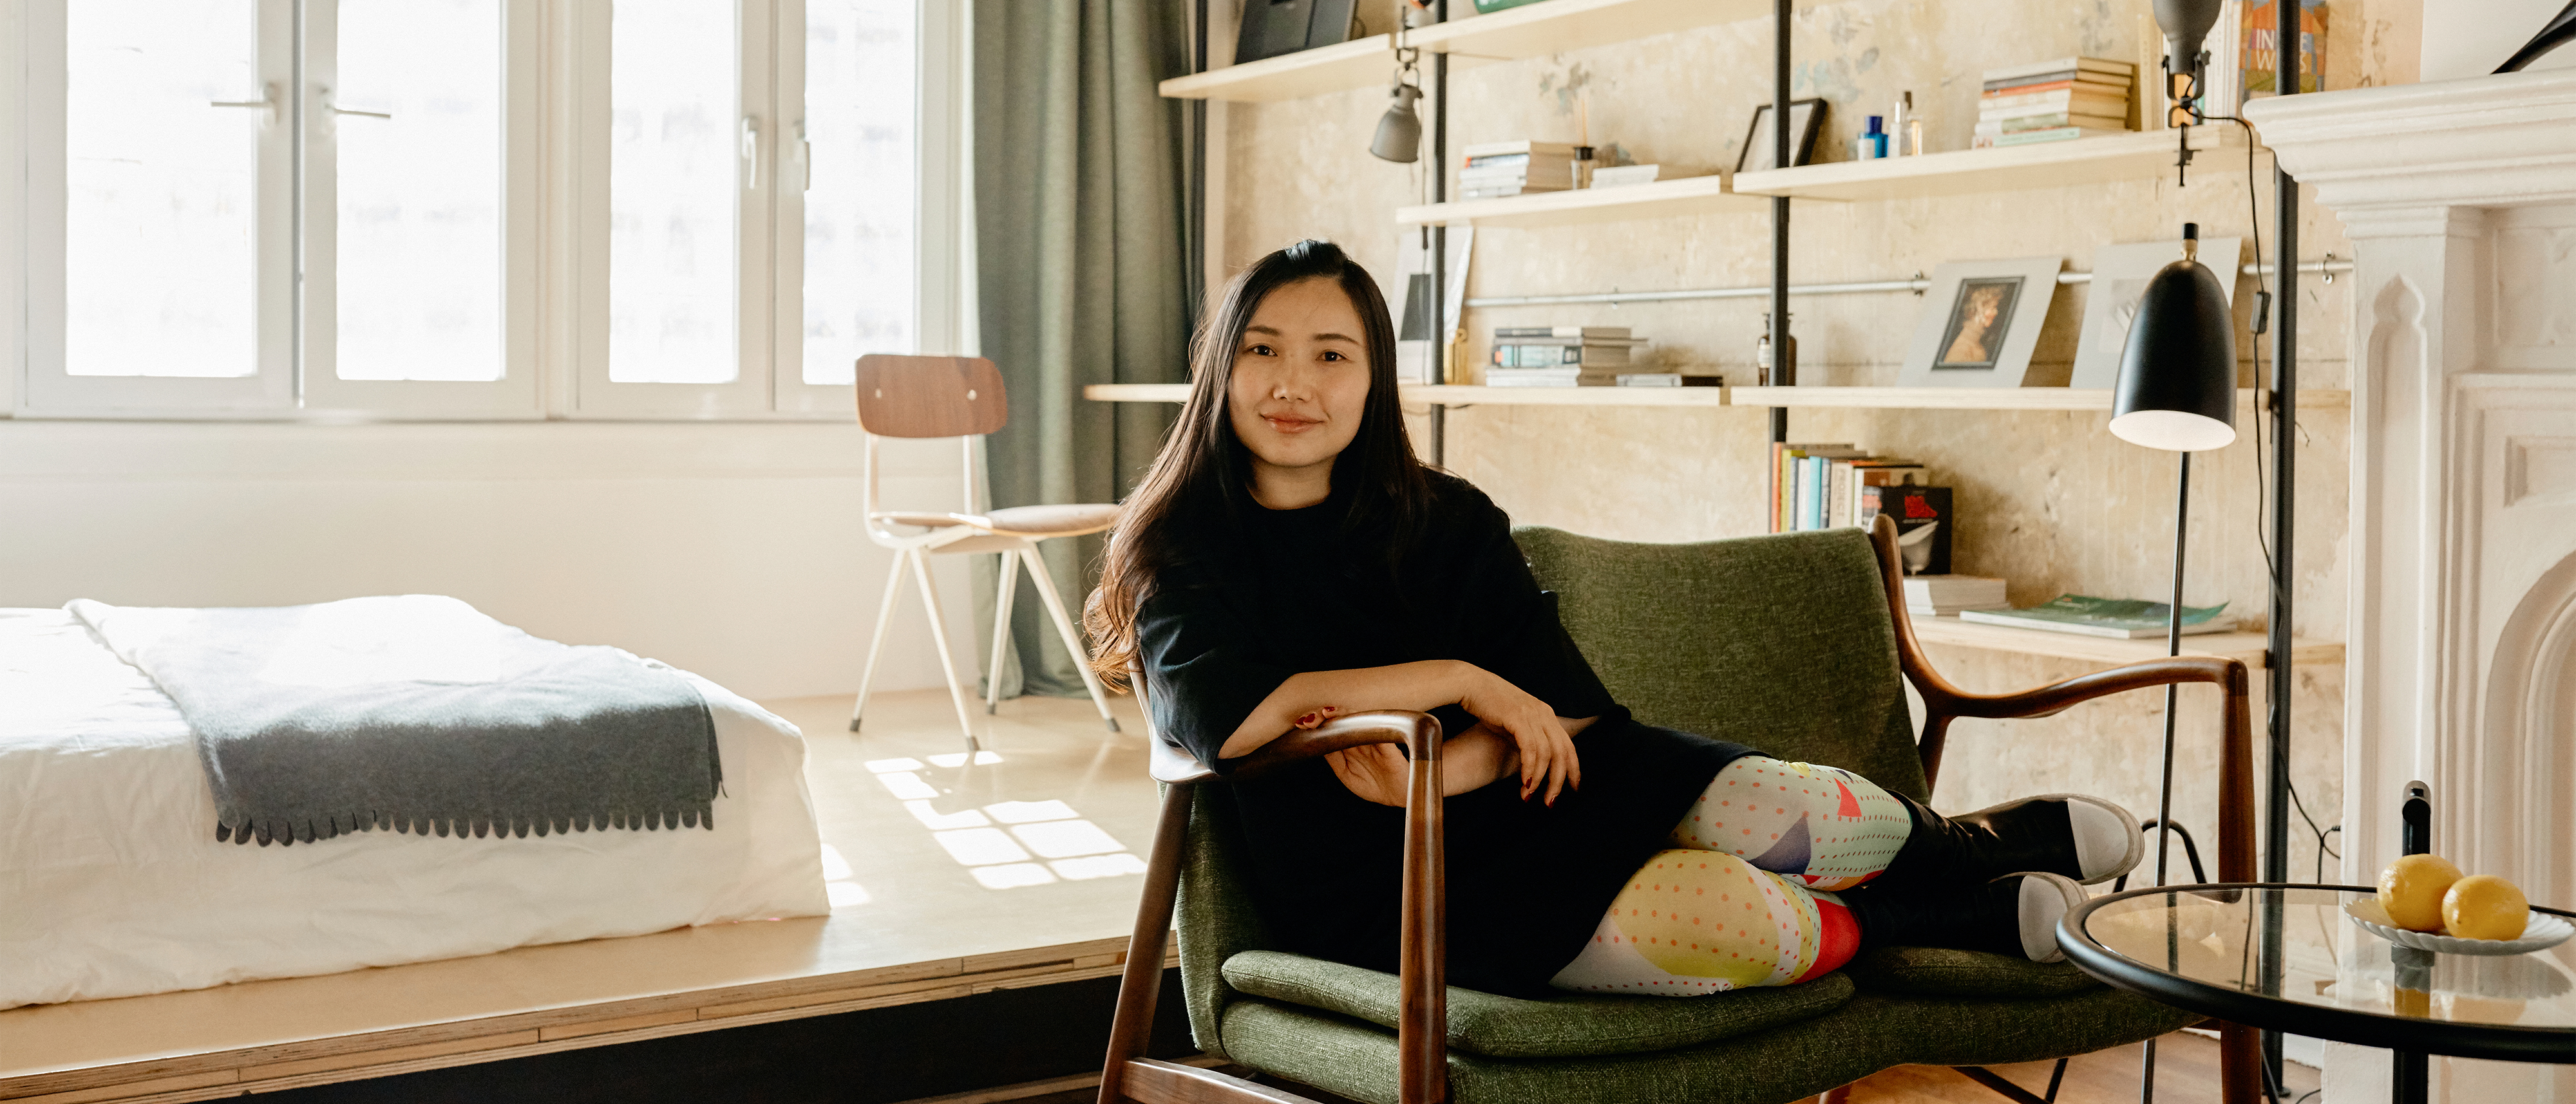 An Airbnb host in China sits on a green fabric chair in the bedroom of her listing.